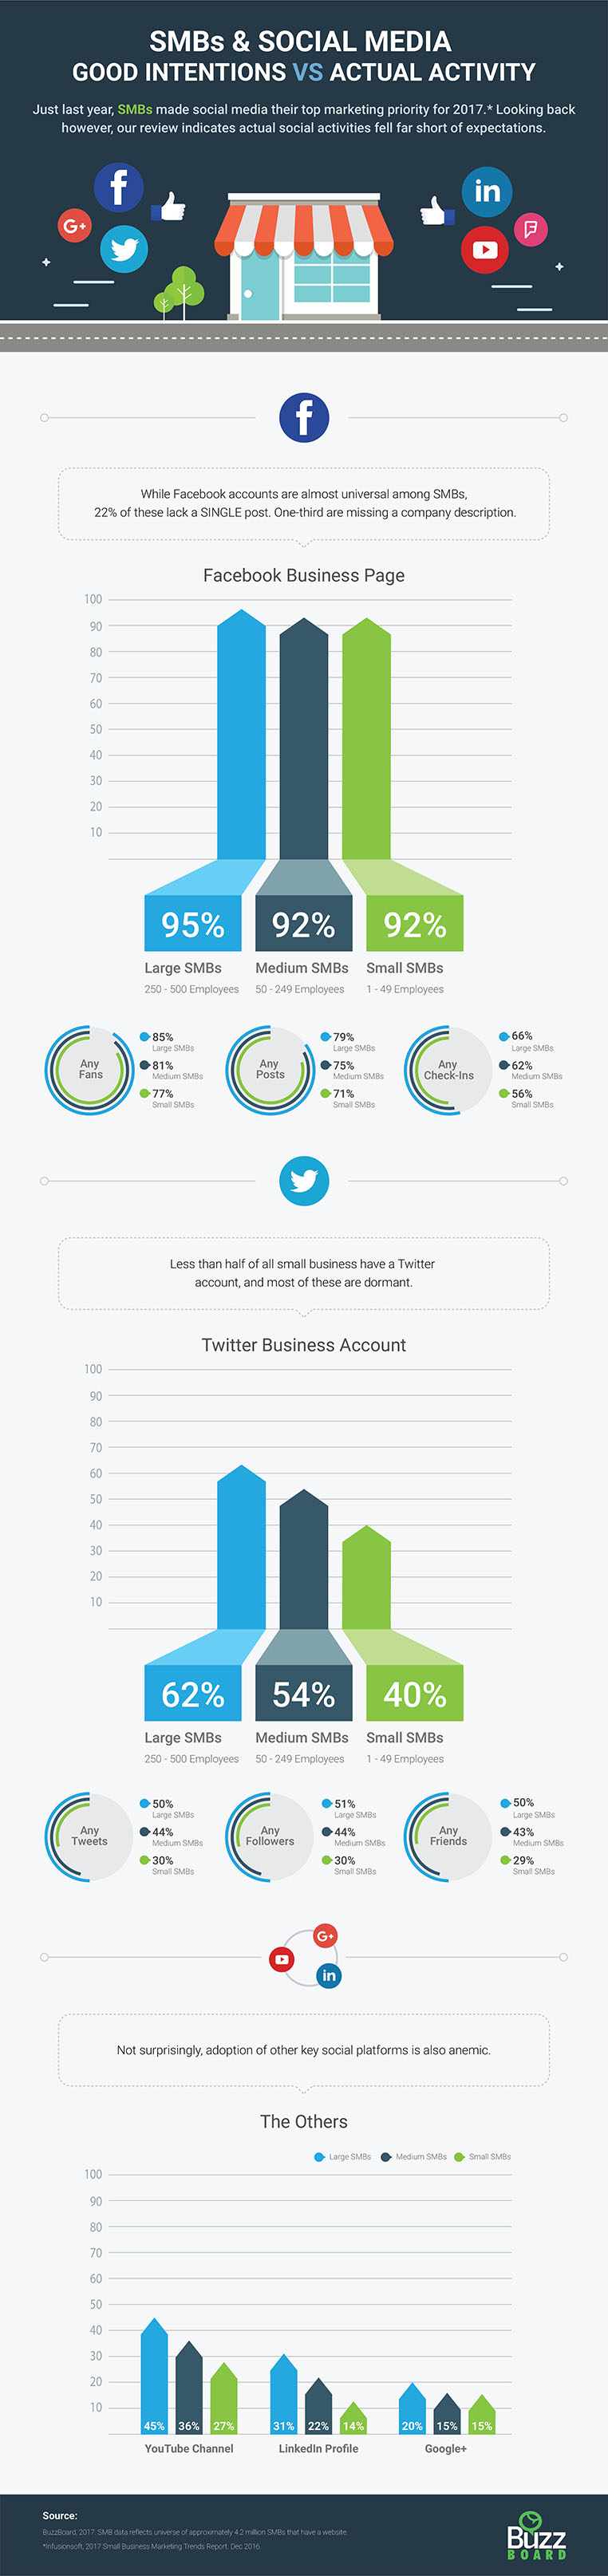 Infographic for SMBs and Social Media